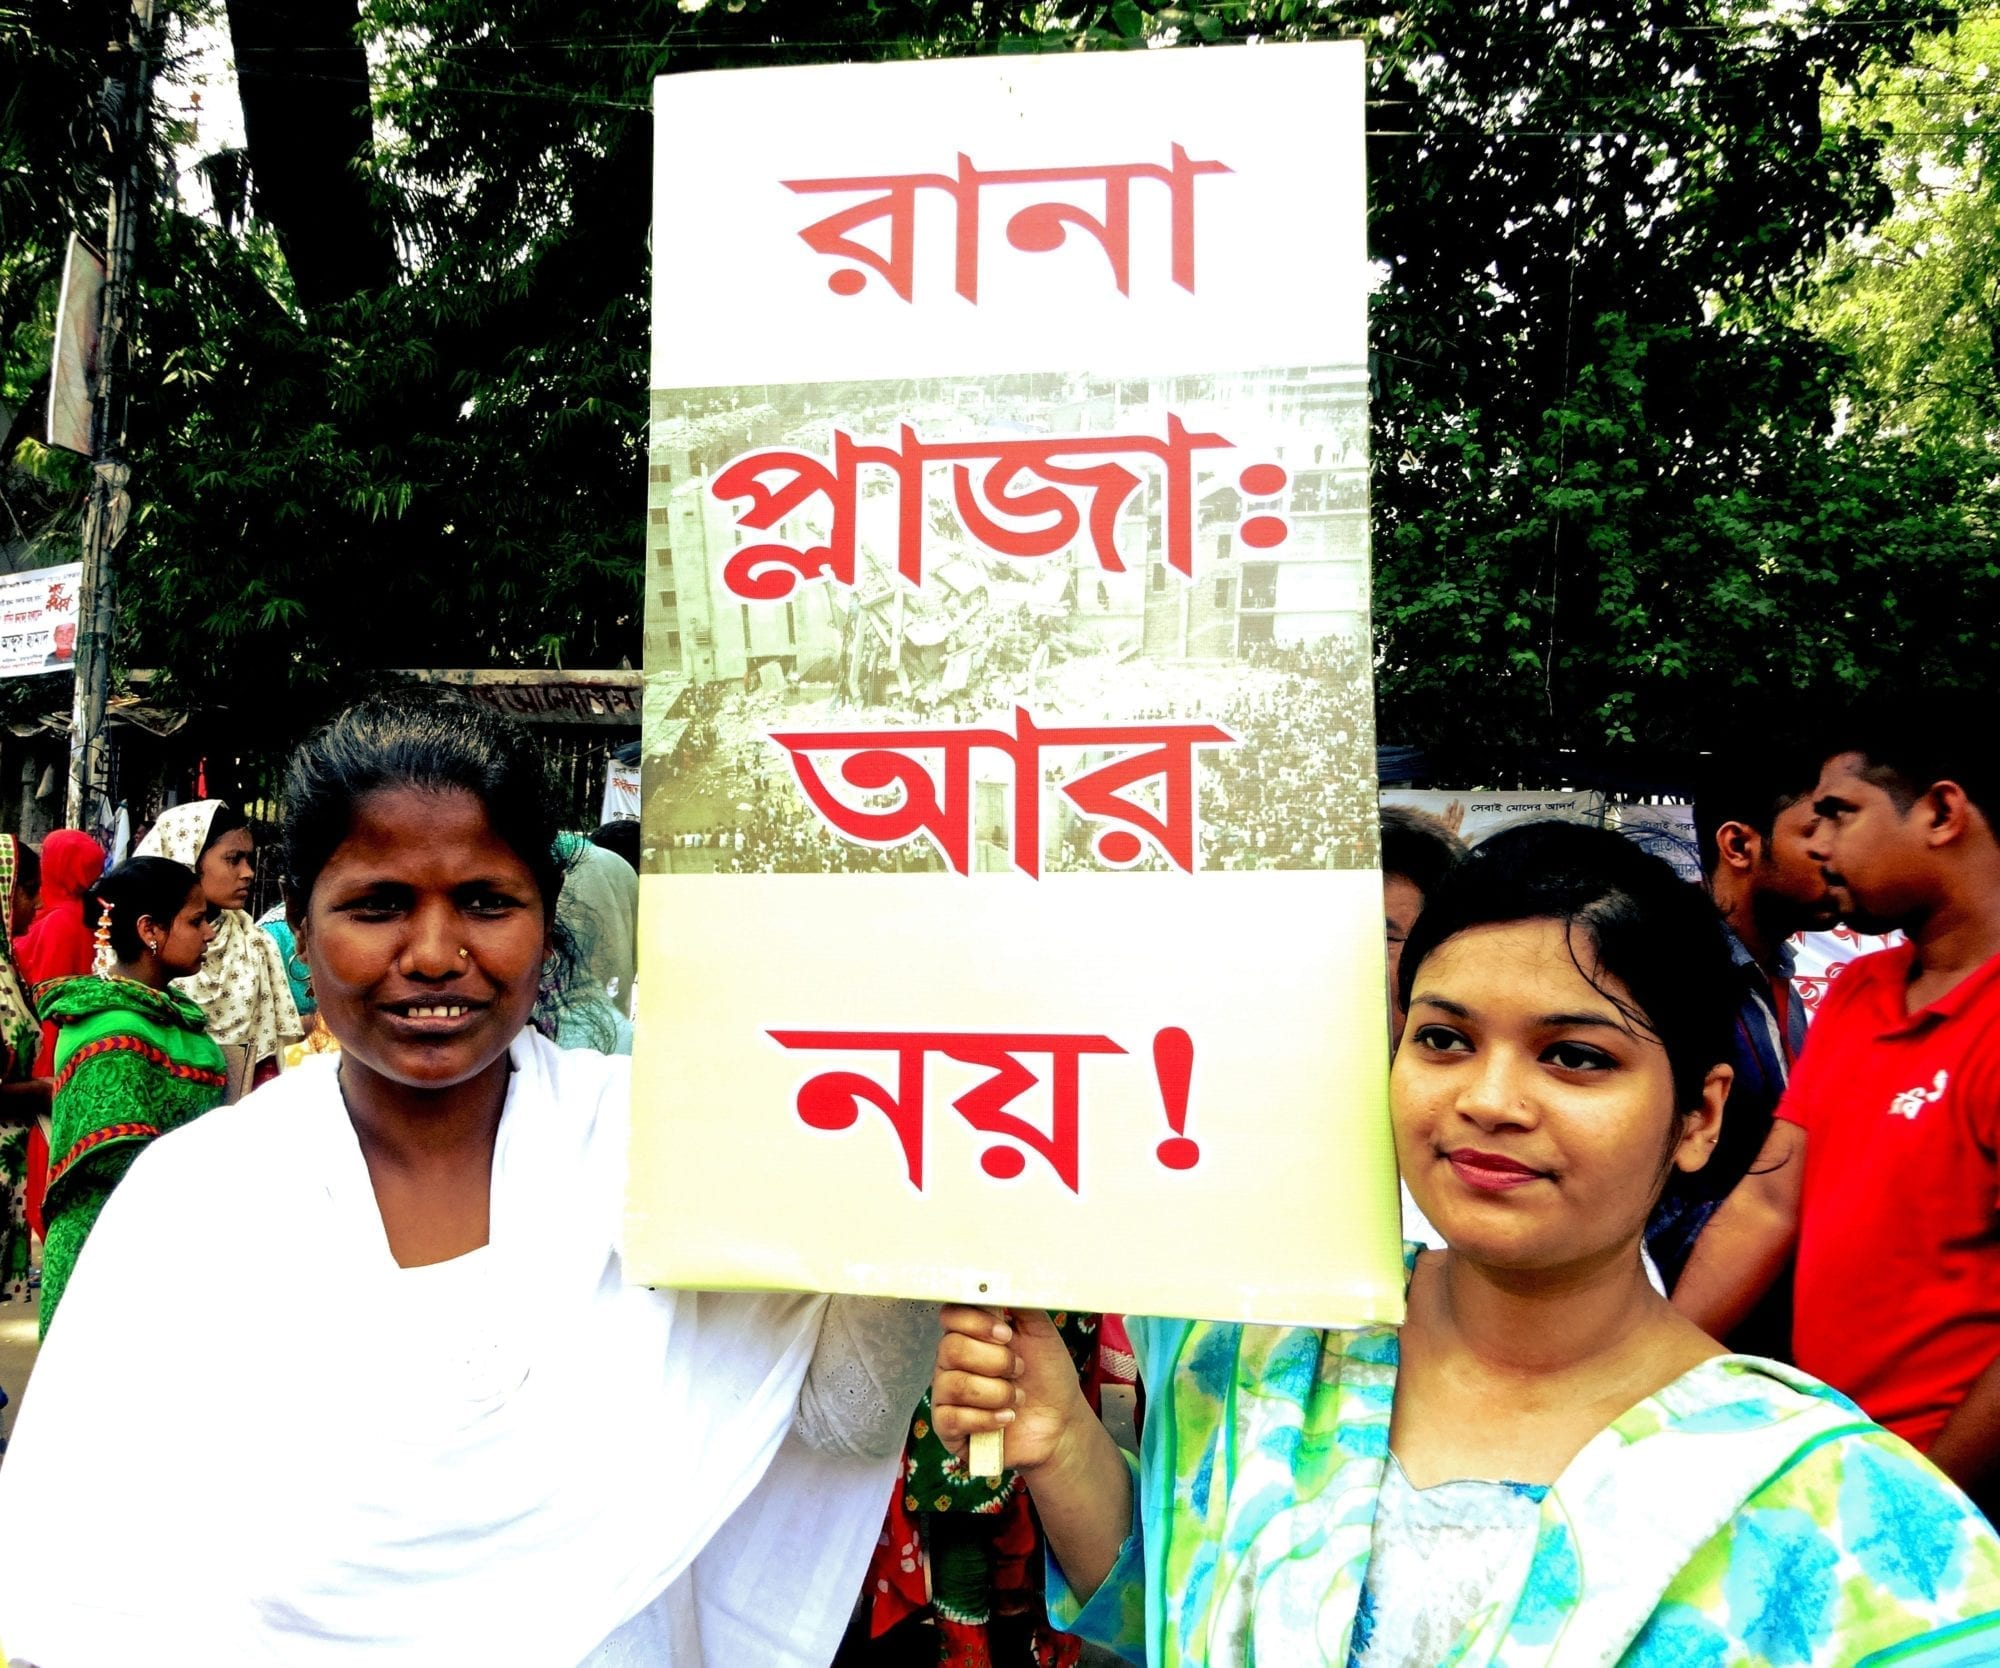 Garment Workers Urge Justice for Rana Plaza Tragedy